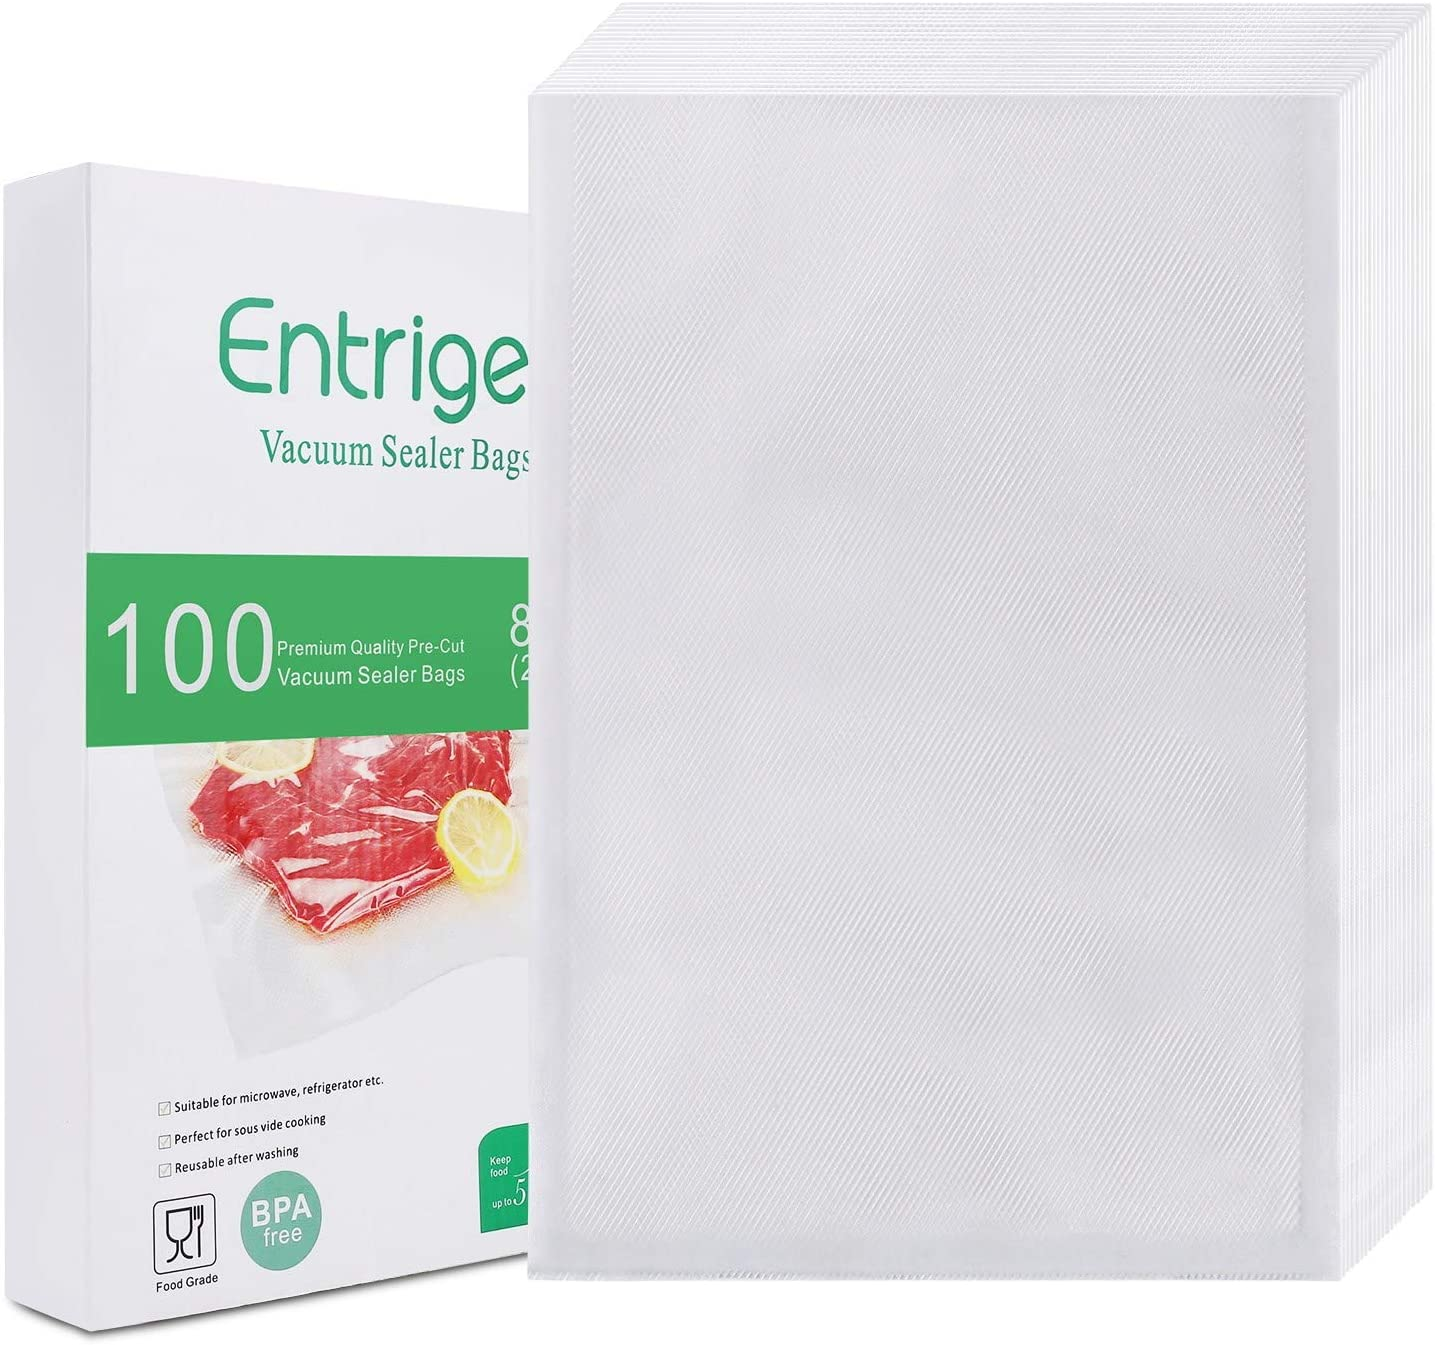 Entrige Vacuum Sealer Bags for Food, 8 X 12 Inches Pre-cut Food Saver Bags Rolls, BPA-Free Vacuum Food Storage Bags for Sous Vide Vac Seal, Commercial Grade, Embossed Seal A Meal Bags Rolls (100 Pcs)